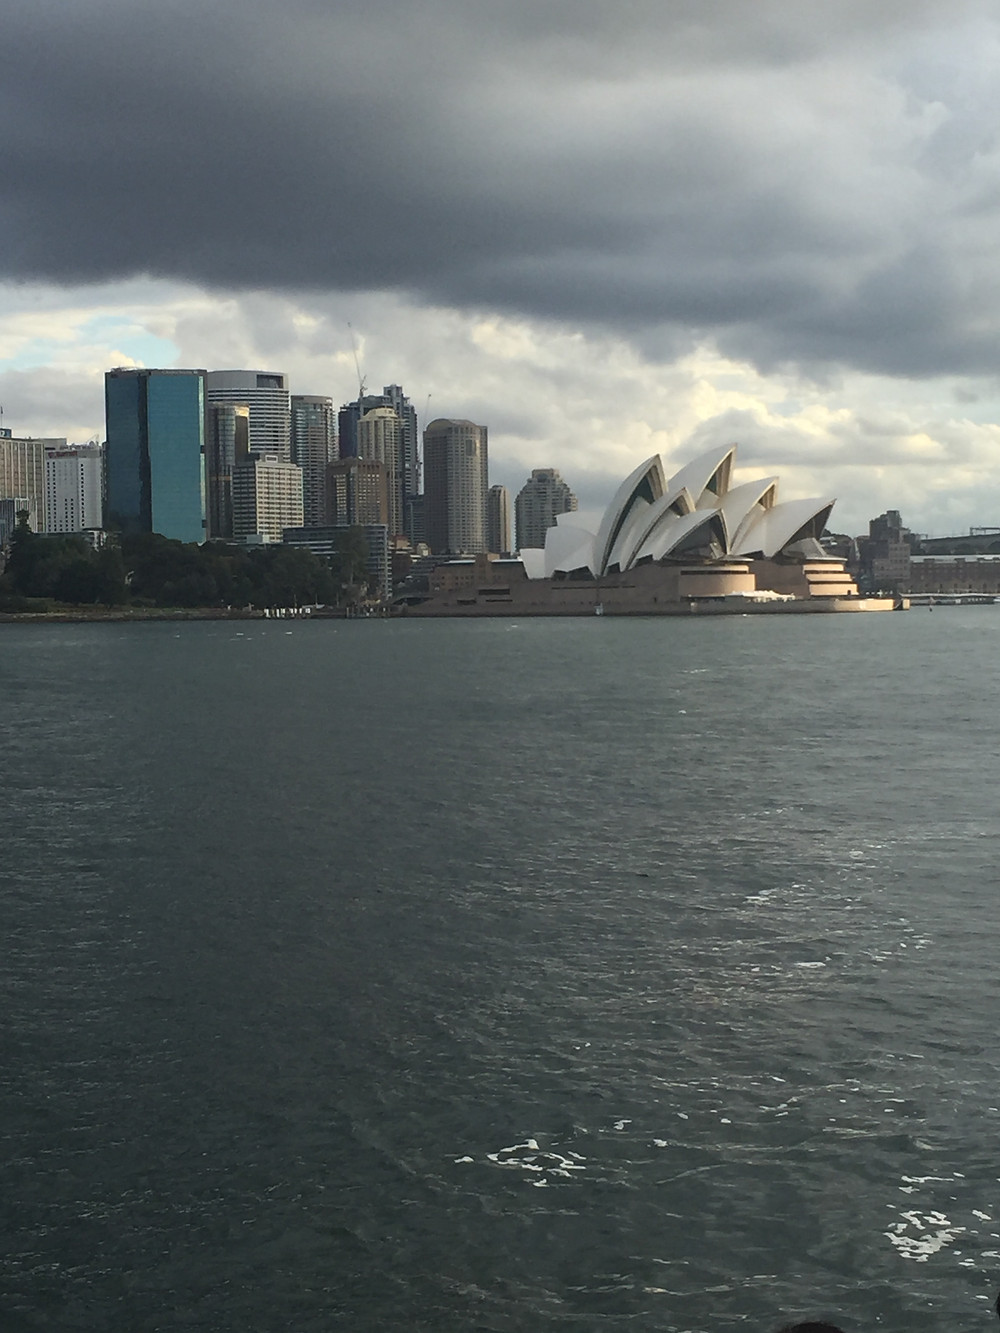 The Sydney Opera House, as seen from the Manly Ferry